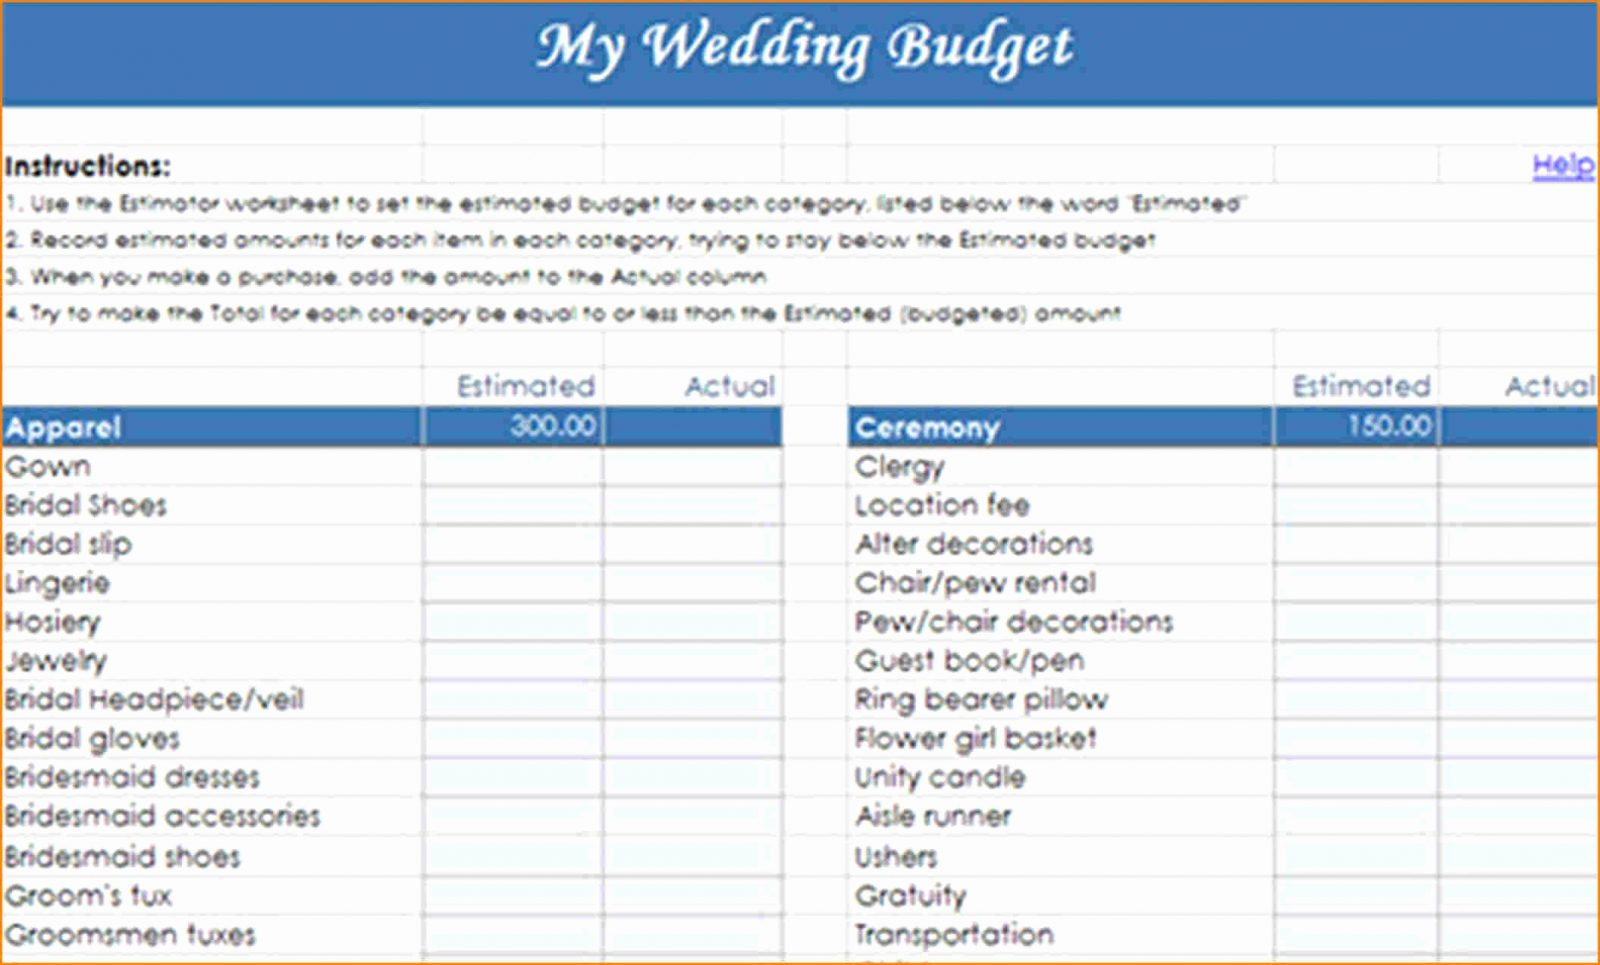 Candle Making Cost Spreadsheet Intended For Wedding Budget Worksheet Template Planner Example Of Spreadsheet